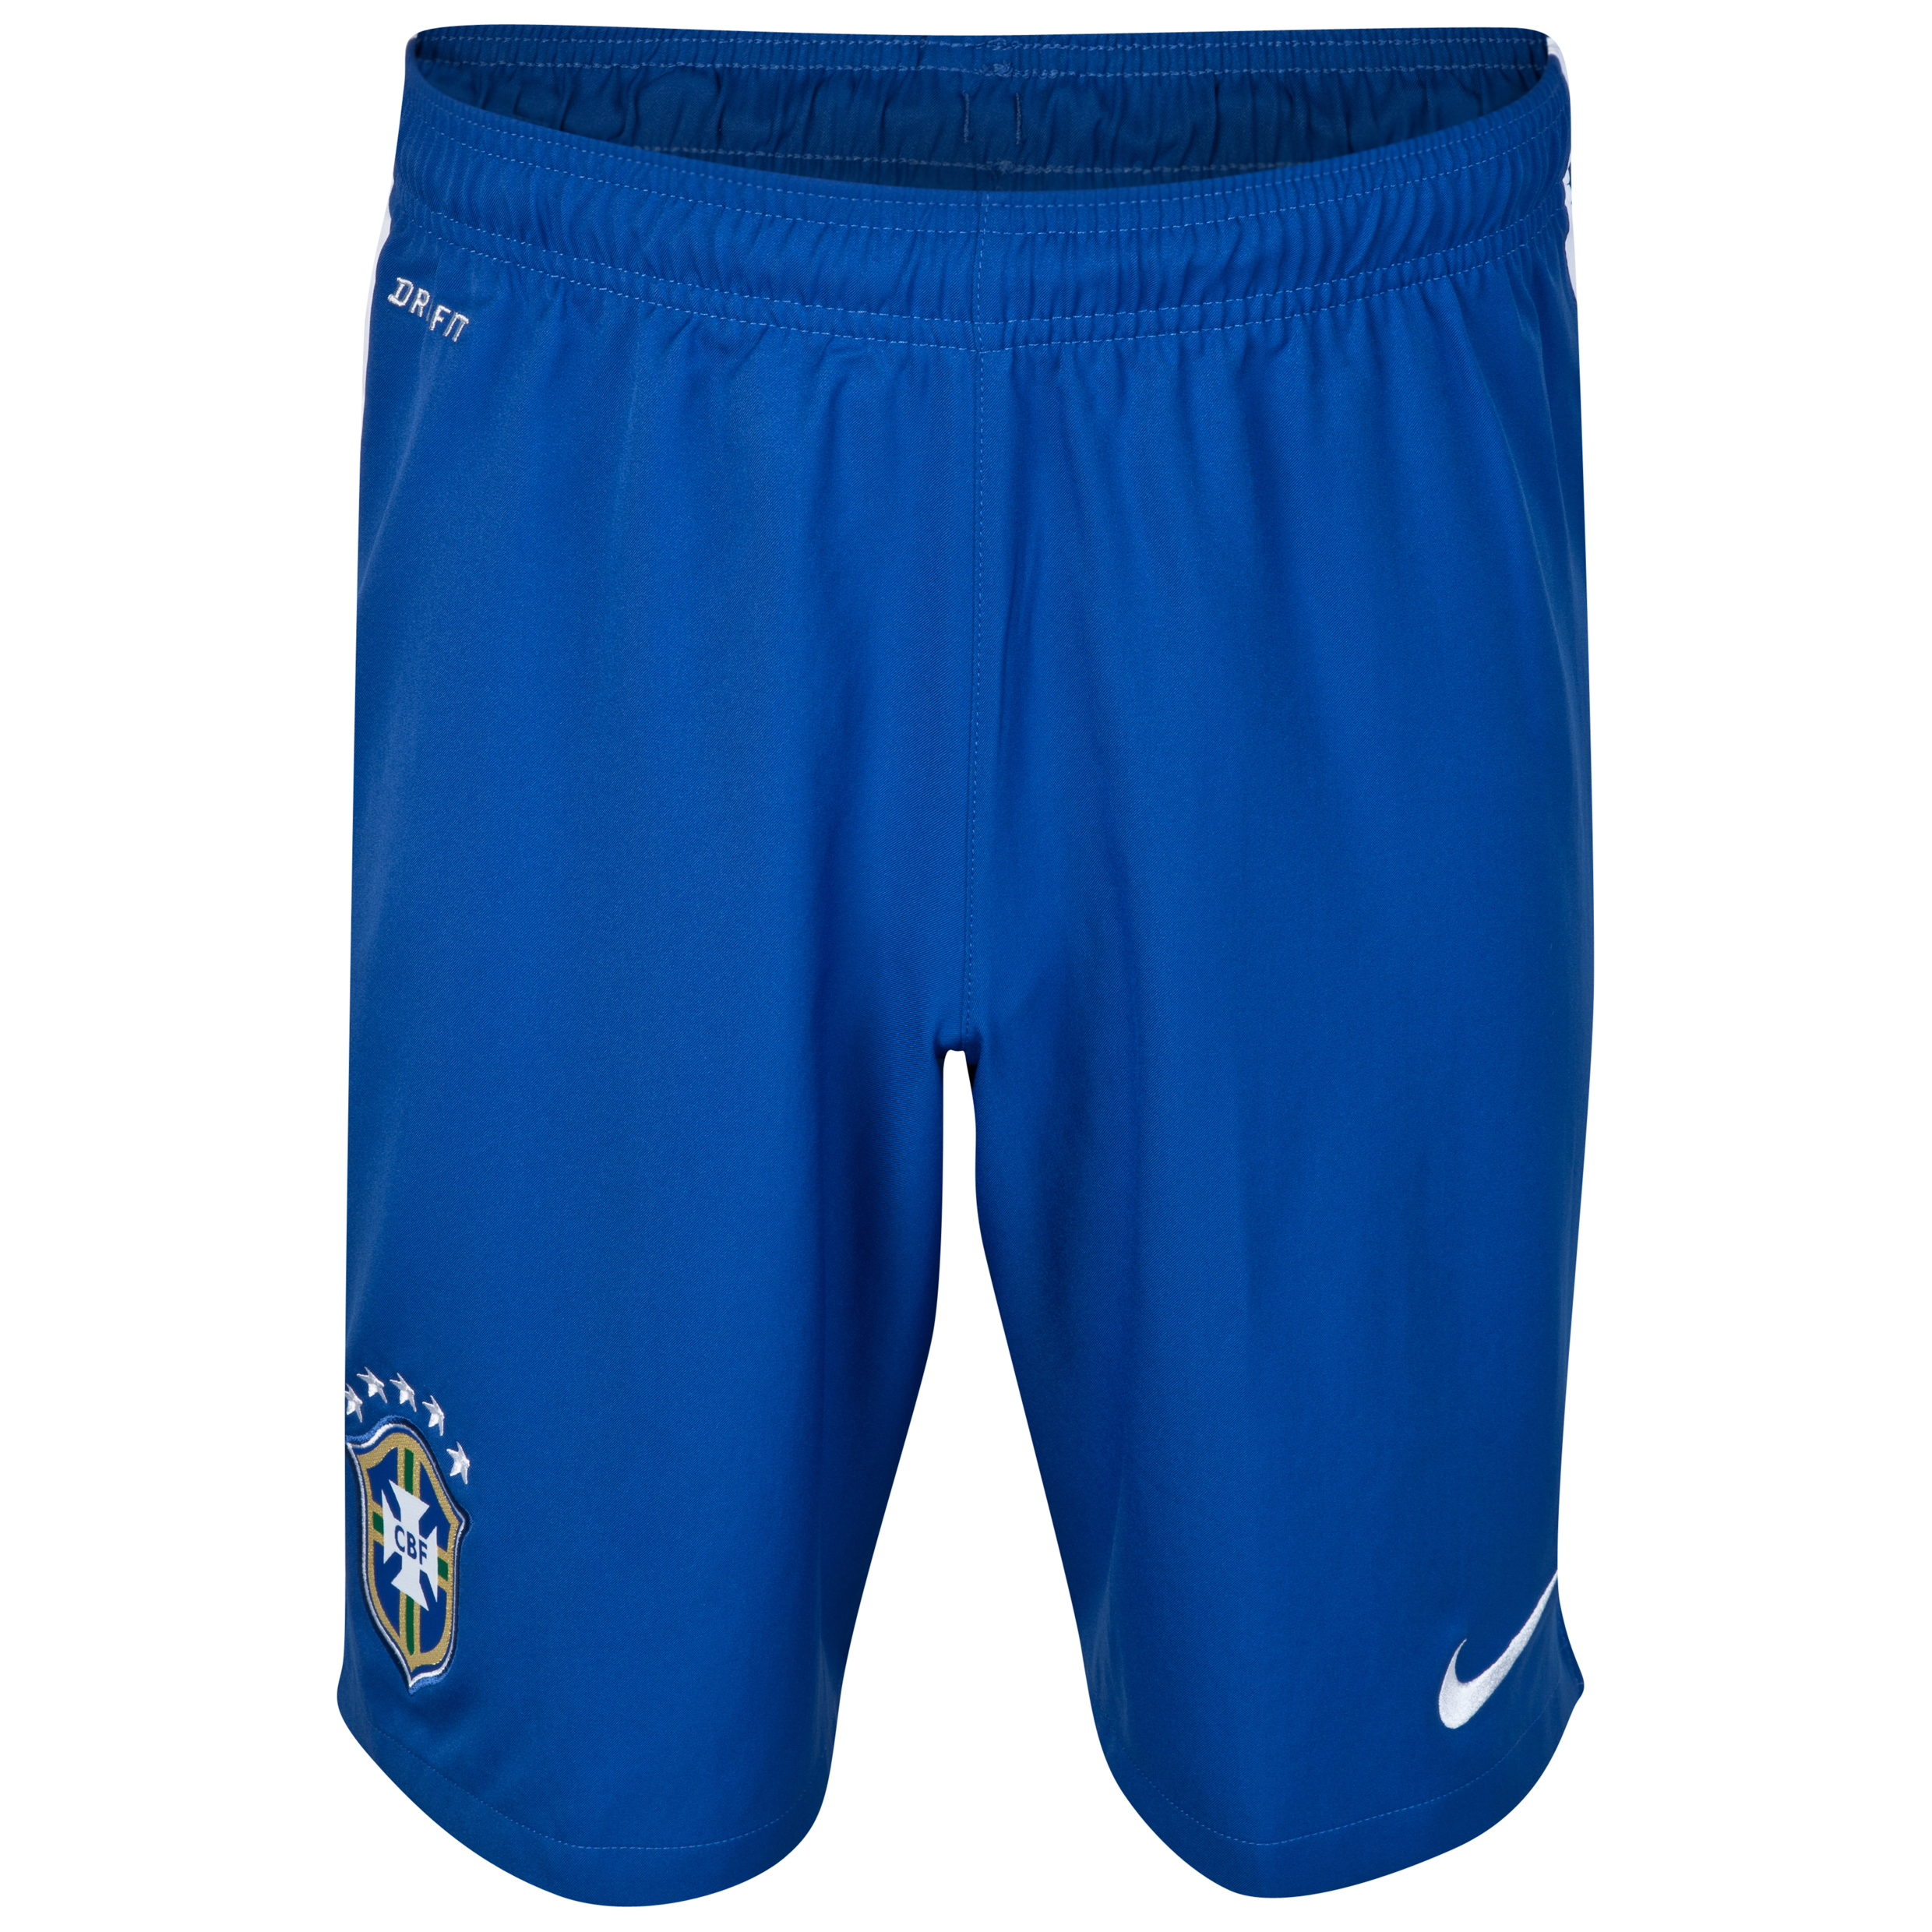 Brazil Home/Away Shorts Blue 2013/14